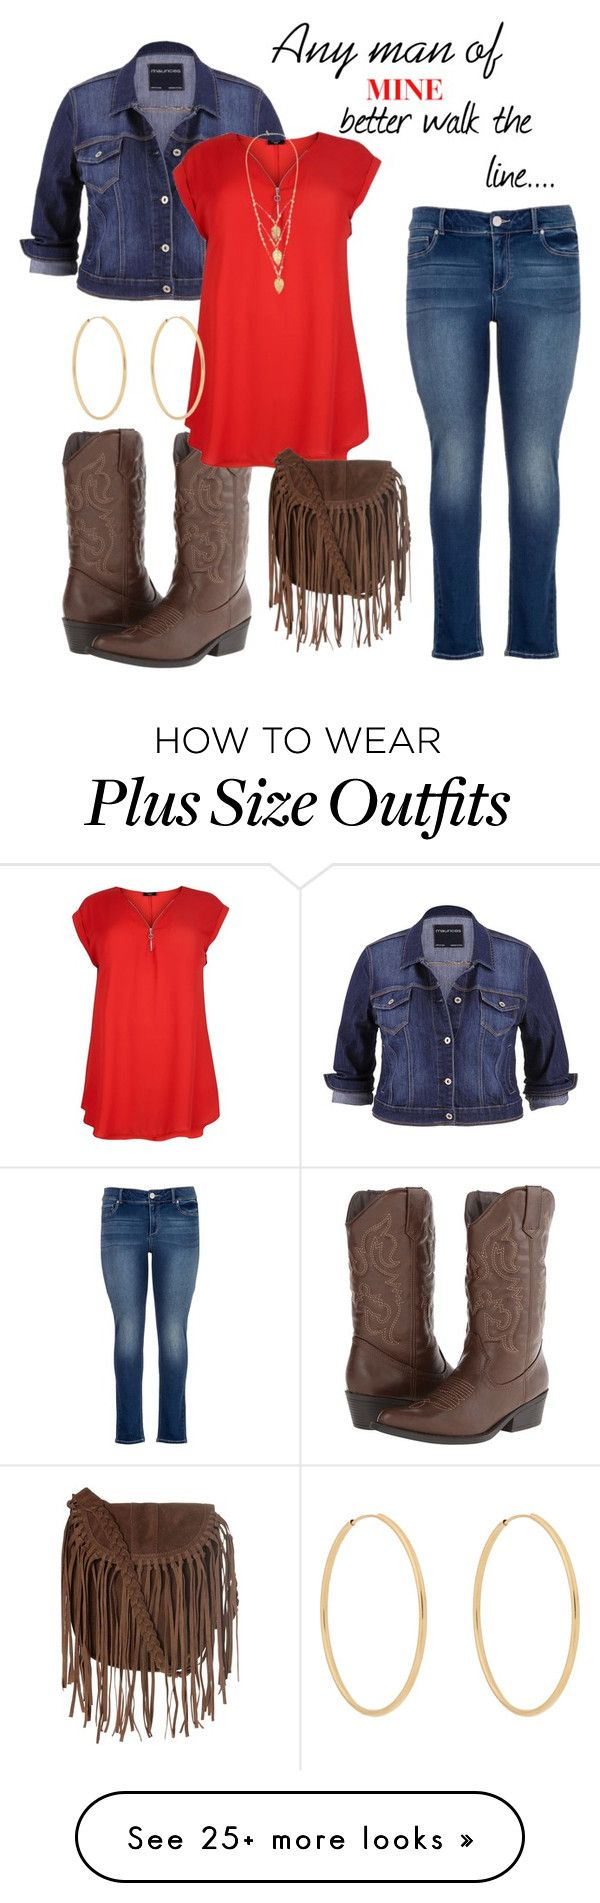 """Country girls can survive"" by habibati on Polyvore featuring Madden Girl, maurices, Glamorous, Loren Stewart, country, women's clothing, women's fashion, women, female and woman"